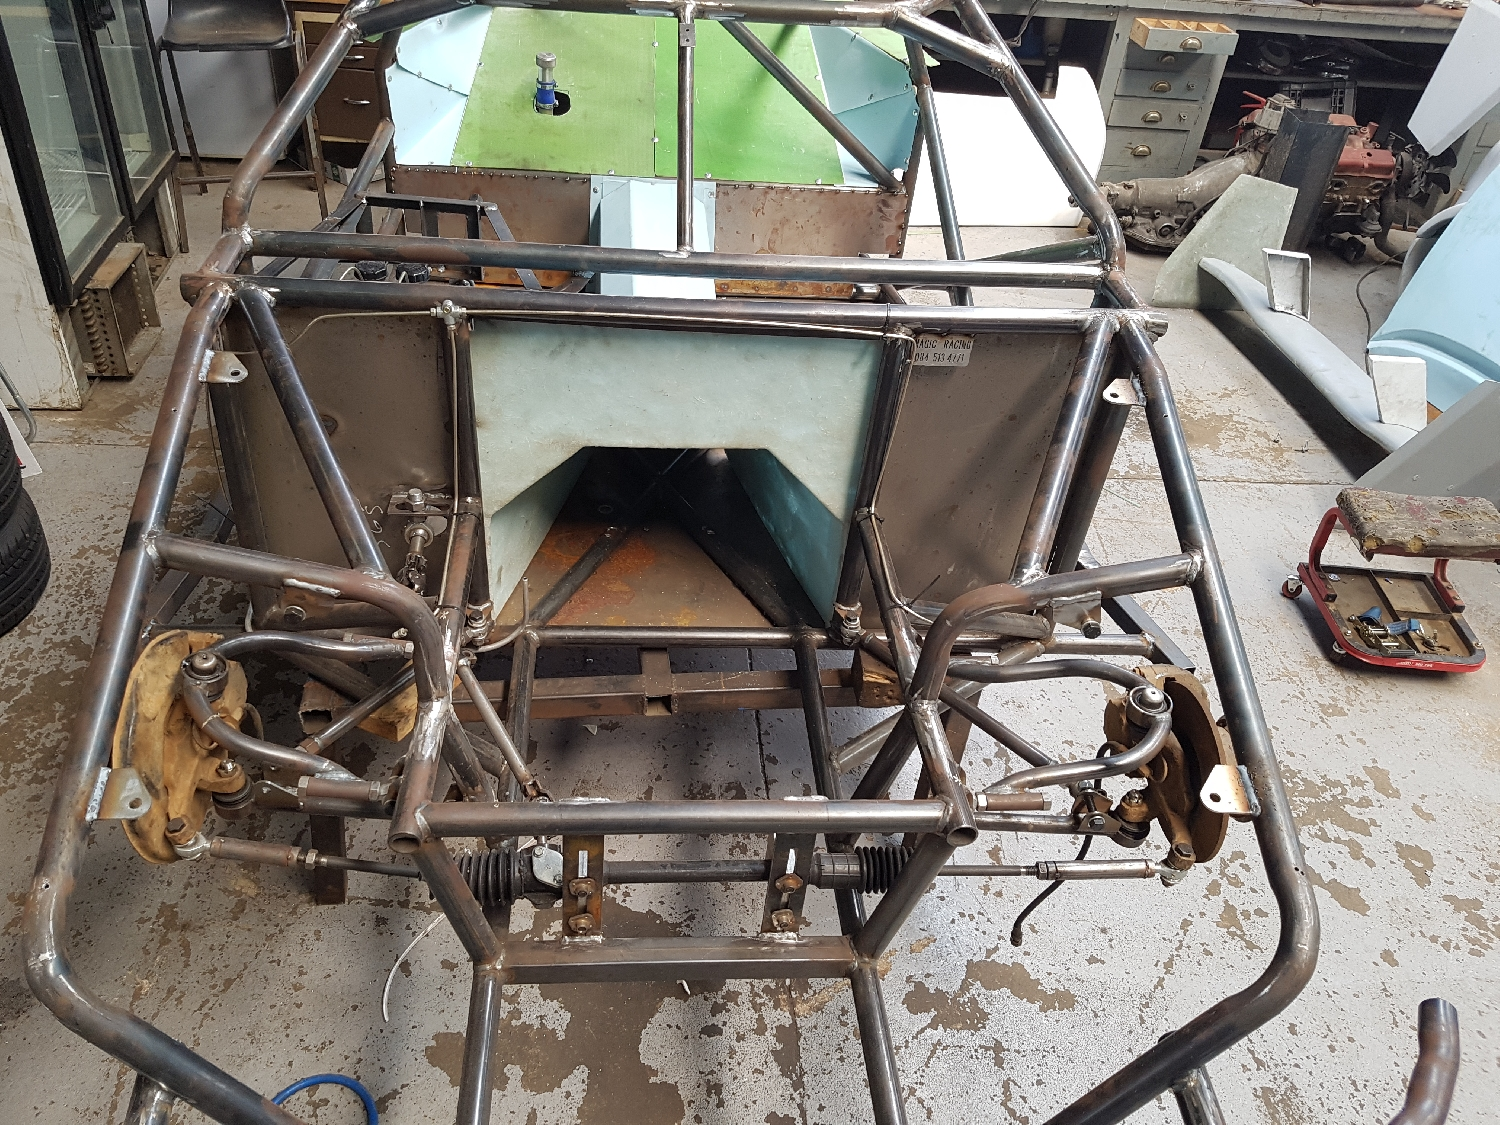 20170301 frame front close up-4303.jpg